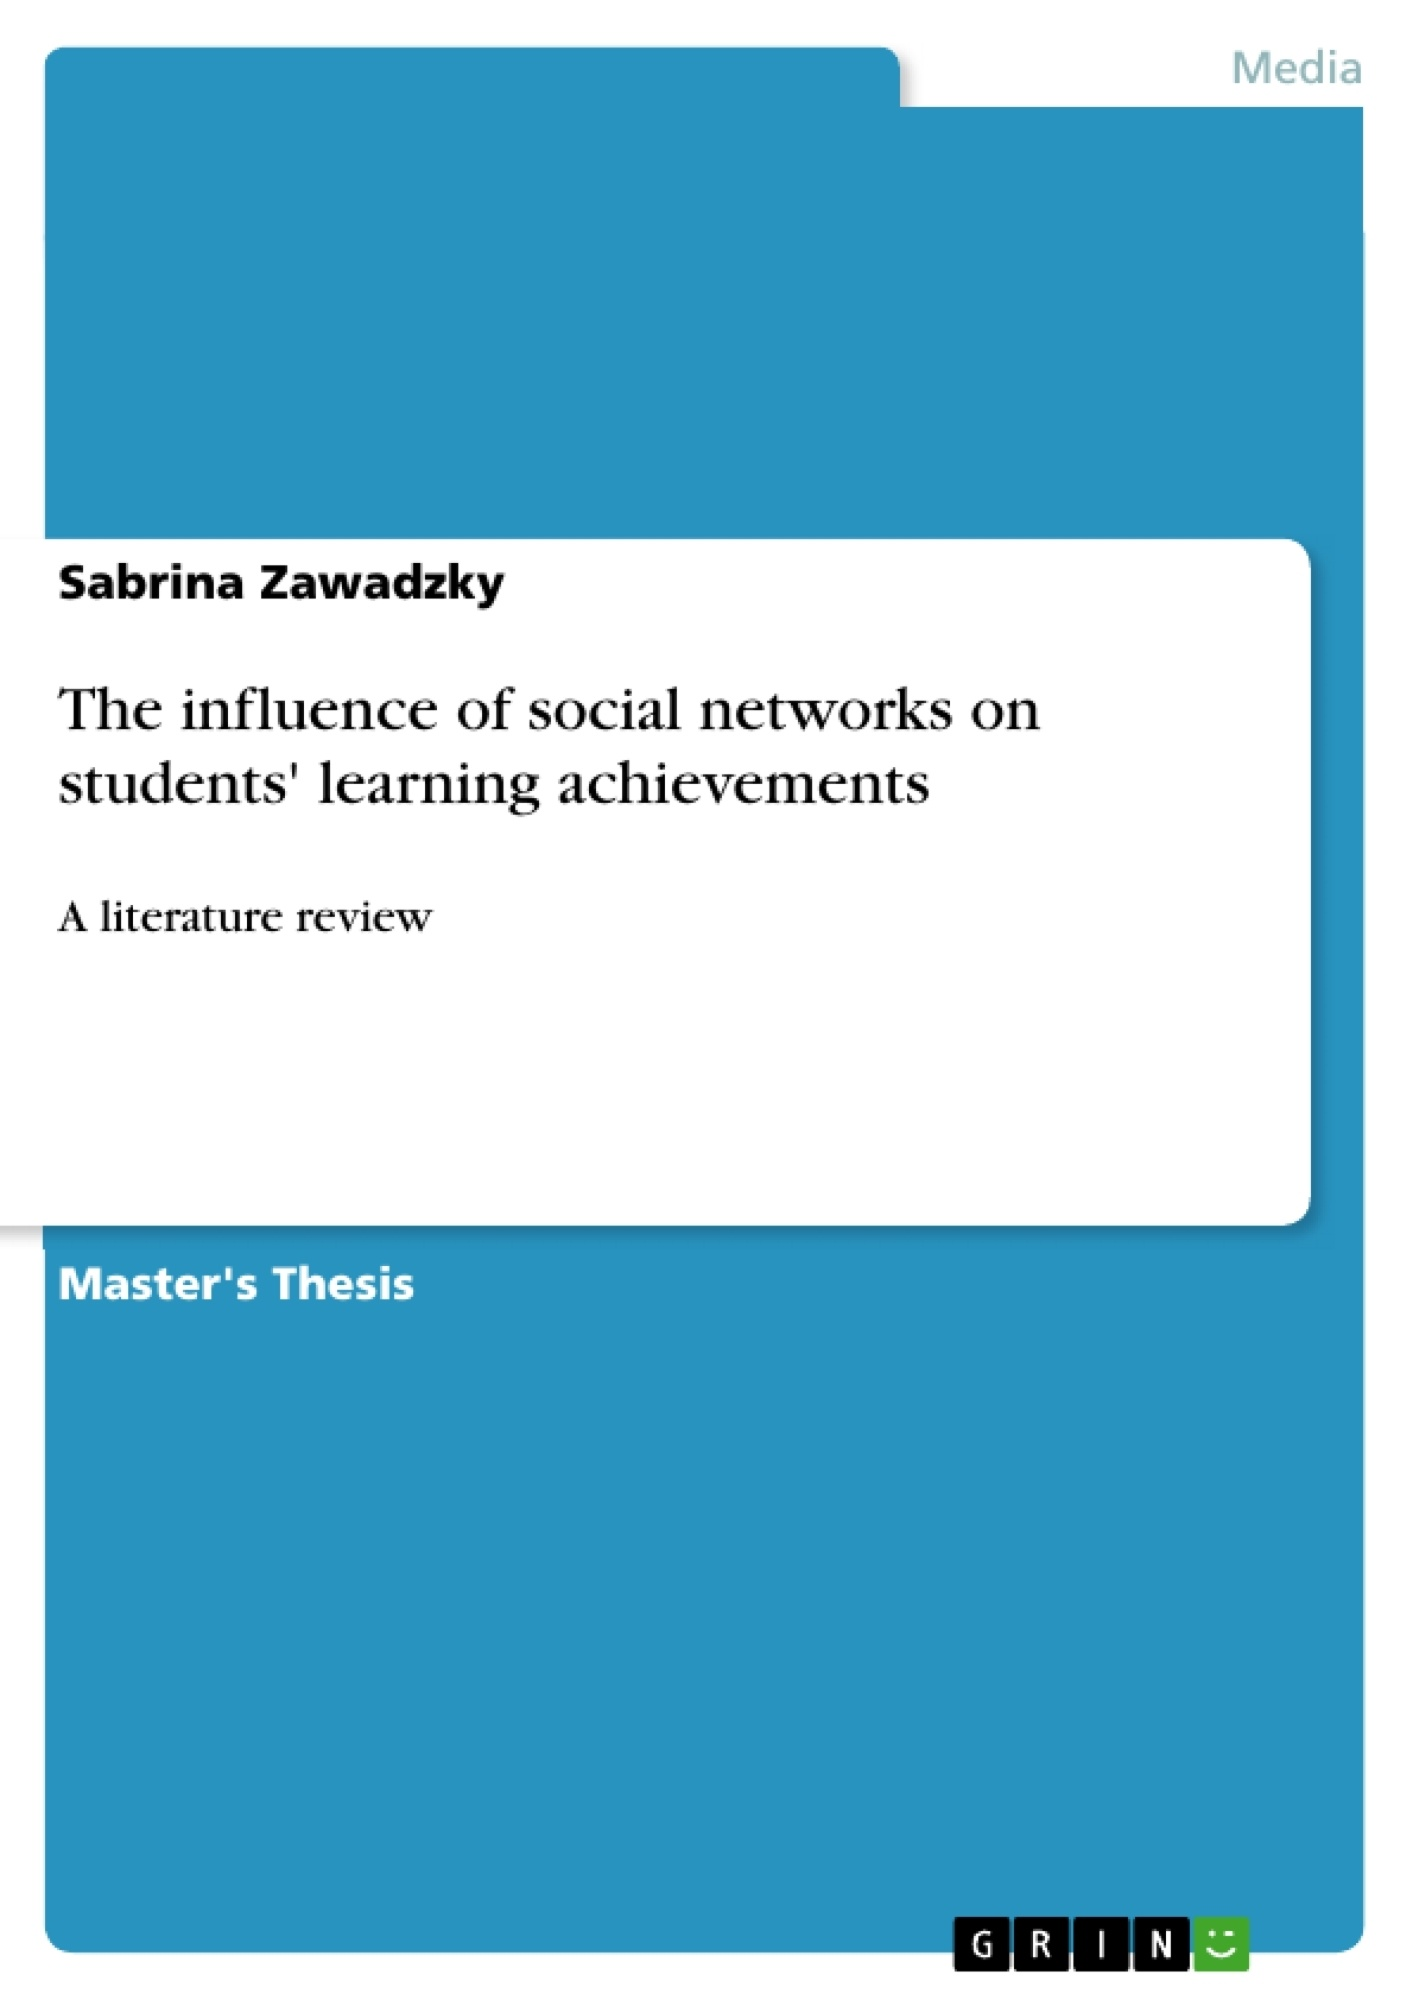 Title: The influence of social networks on students' learning achievements